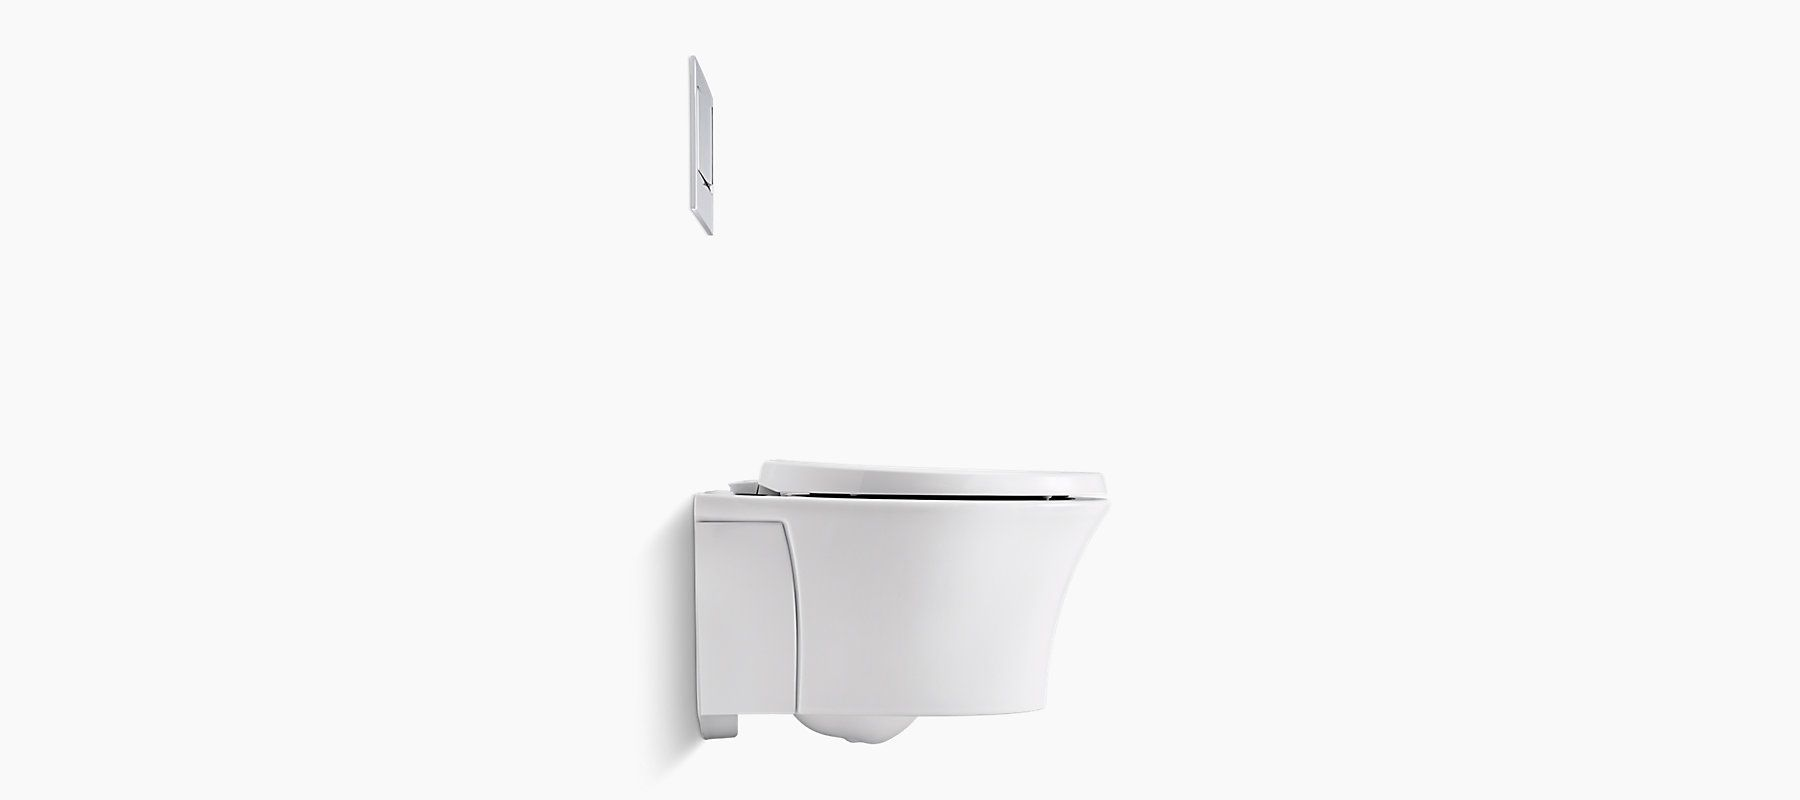 K 6299 Veil Wall Hung Toilet Bowl With Reveal Seat Kohler Wall Hung Toilet Toilet Bowl Dual Flush Toilet